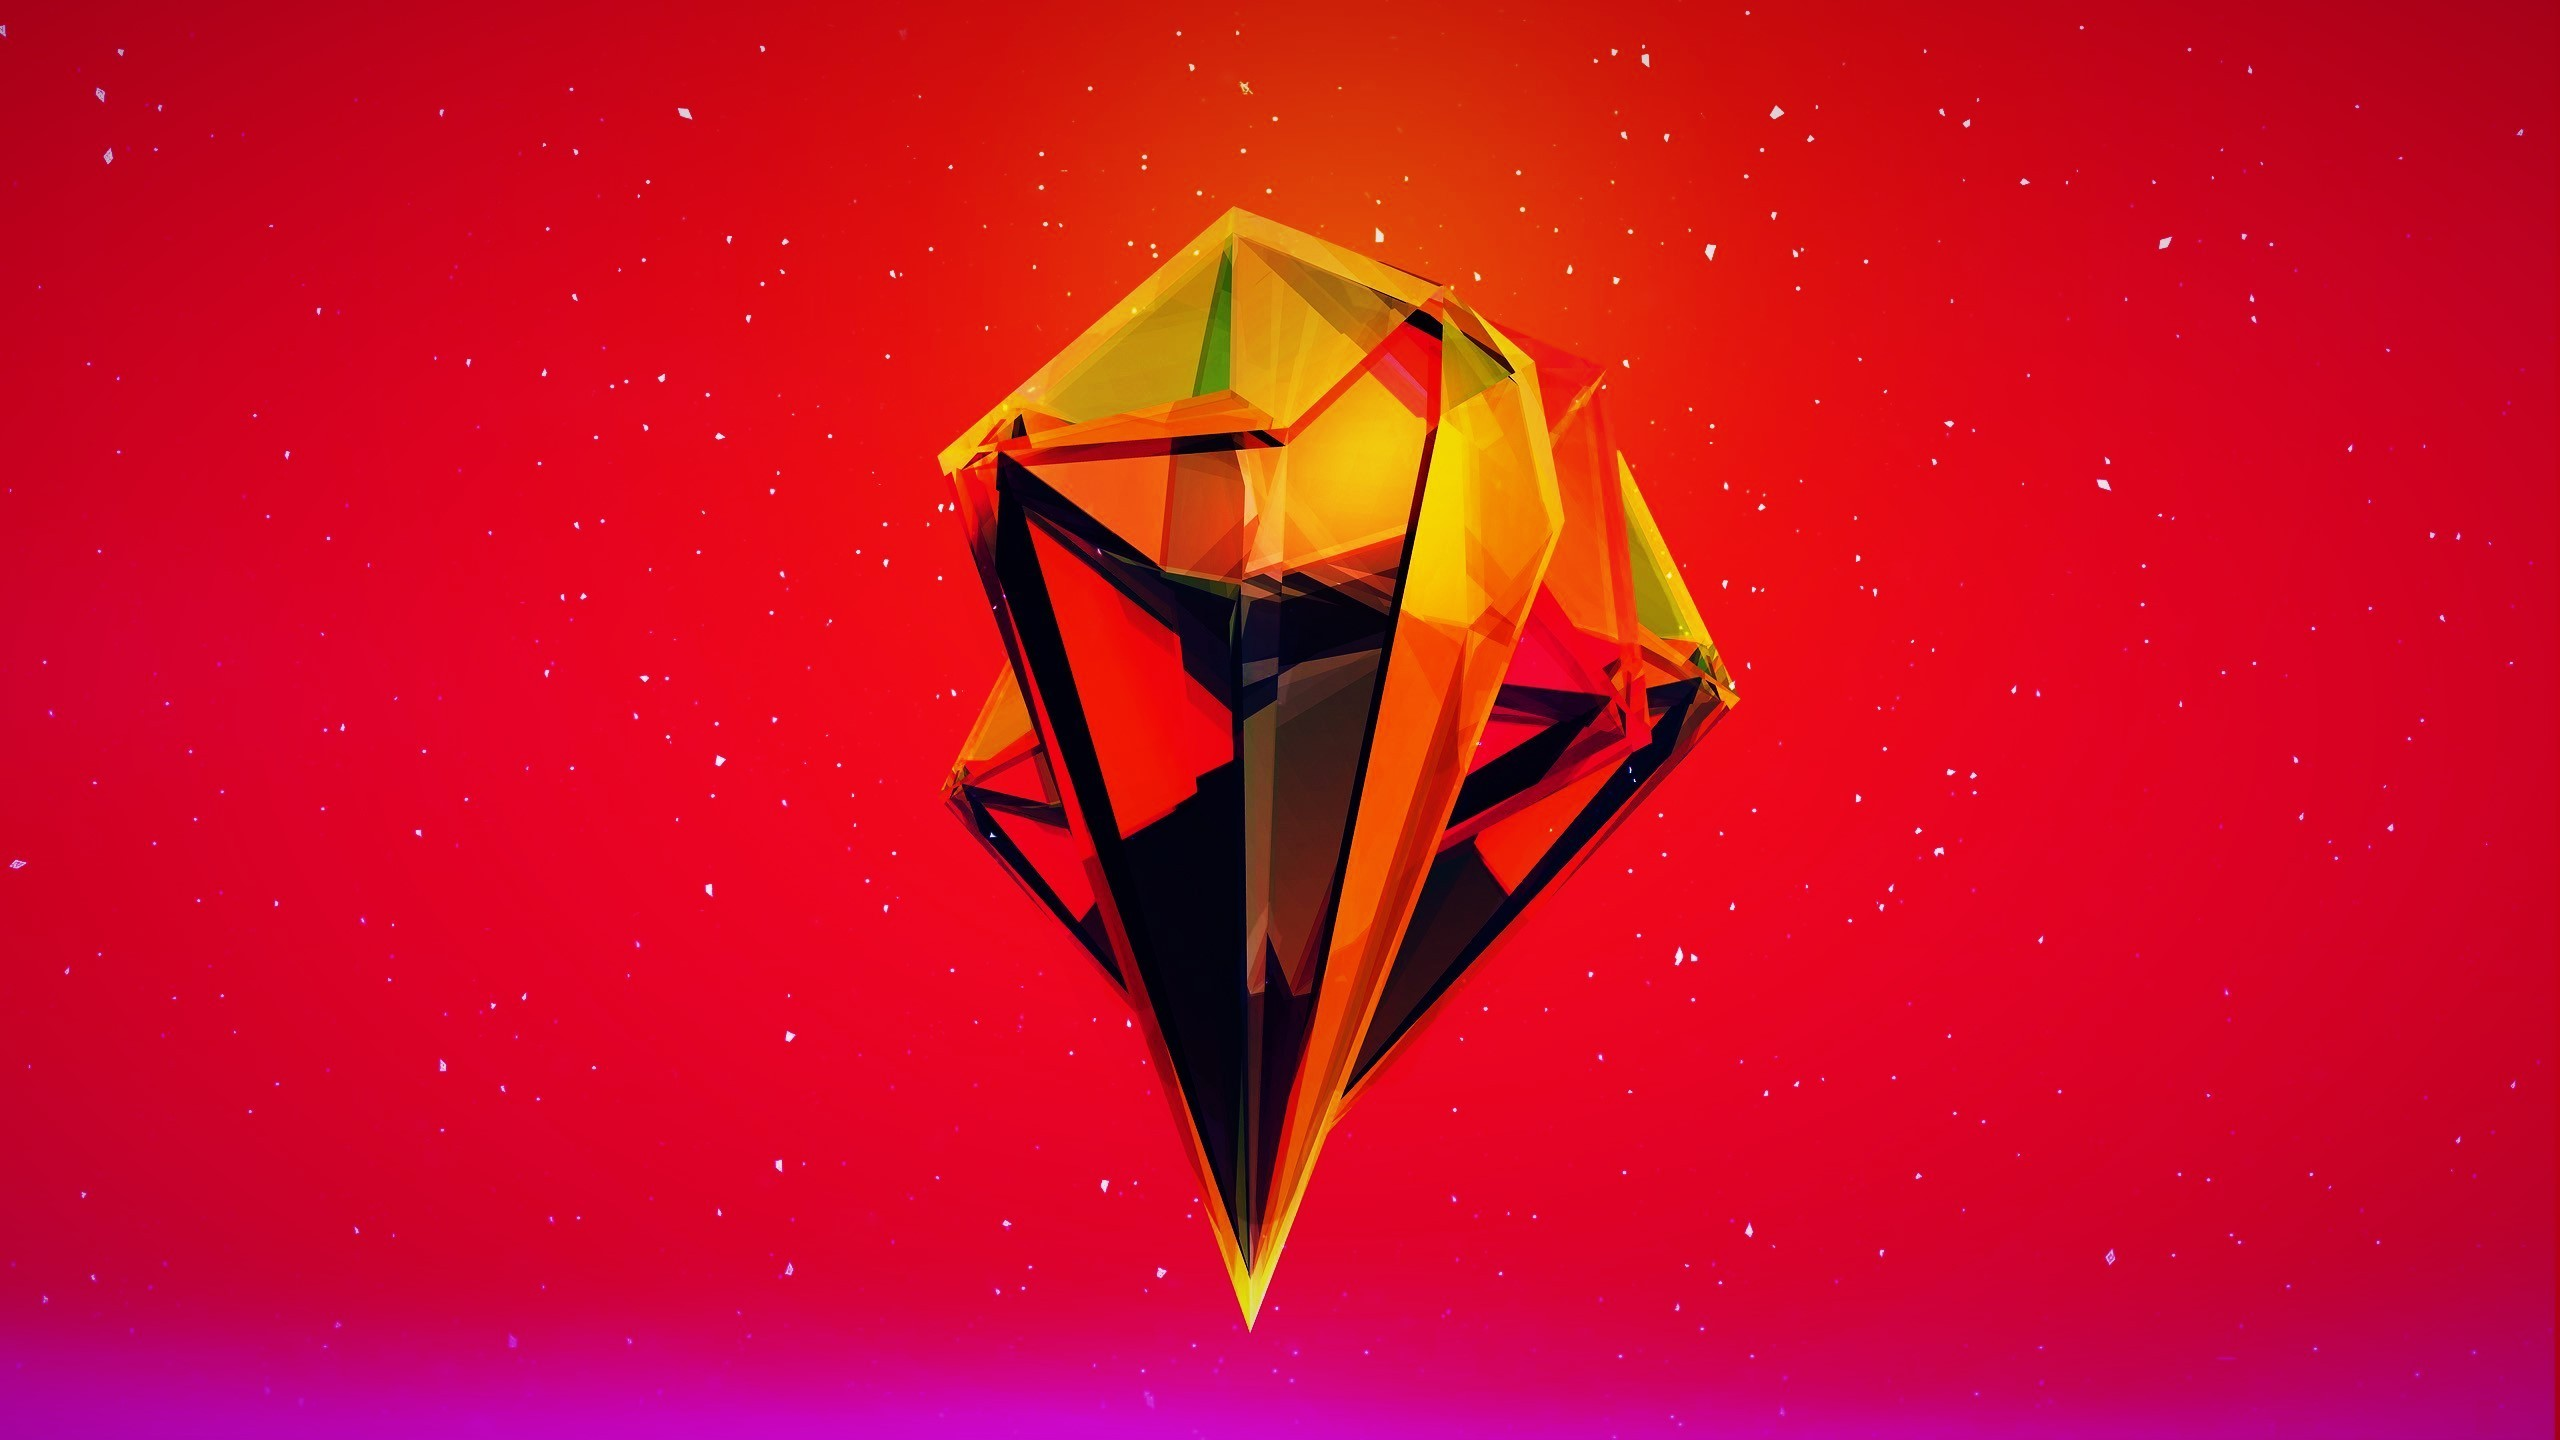 General Justin Maller red orange abstract 3D pink purple